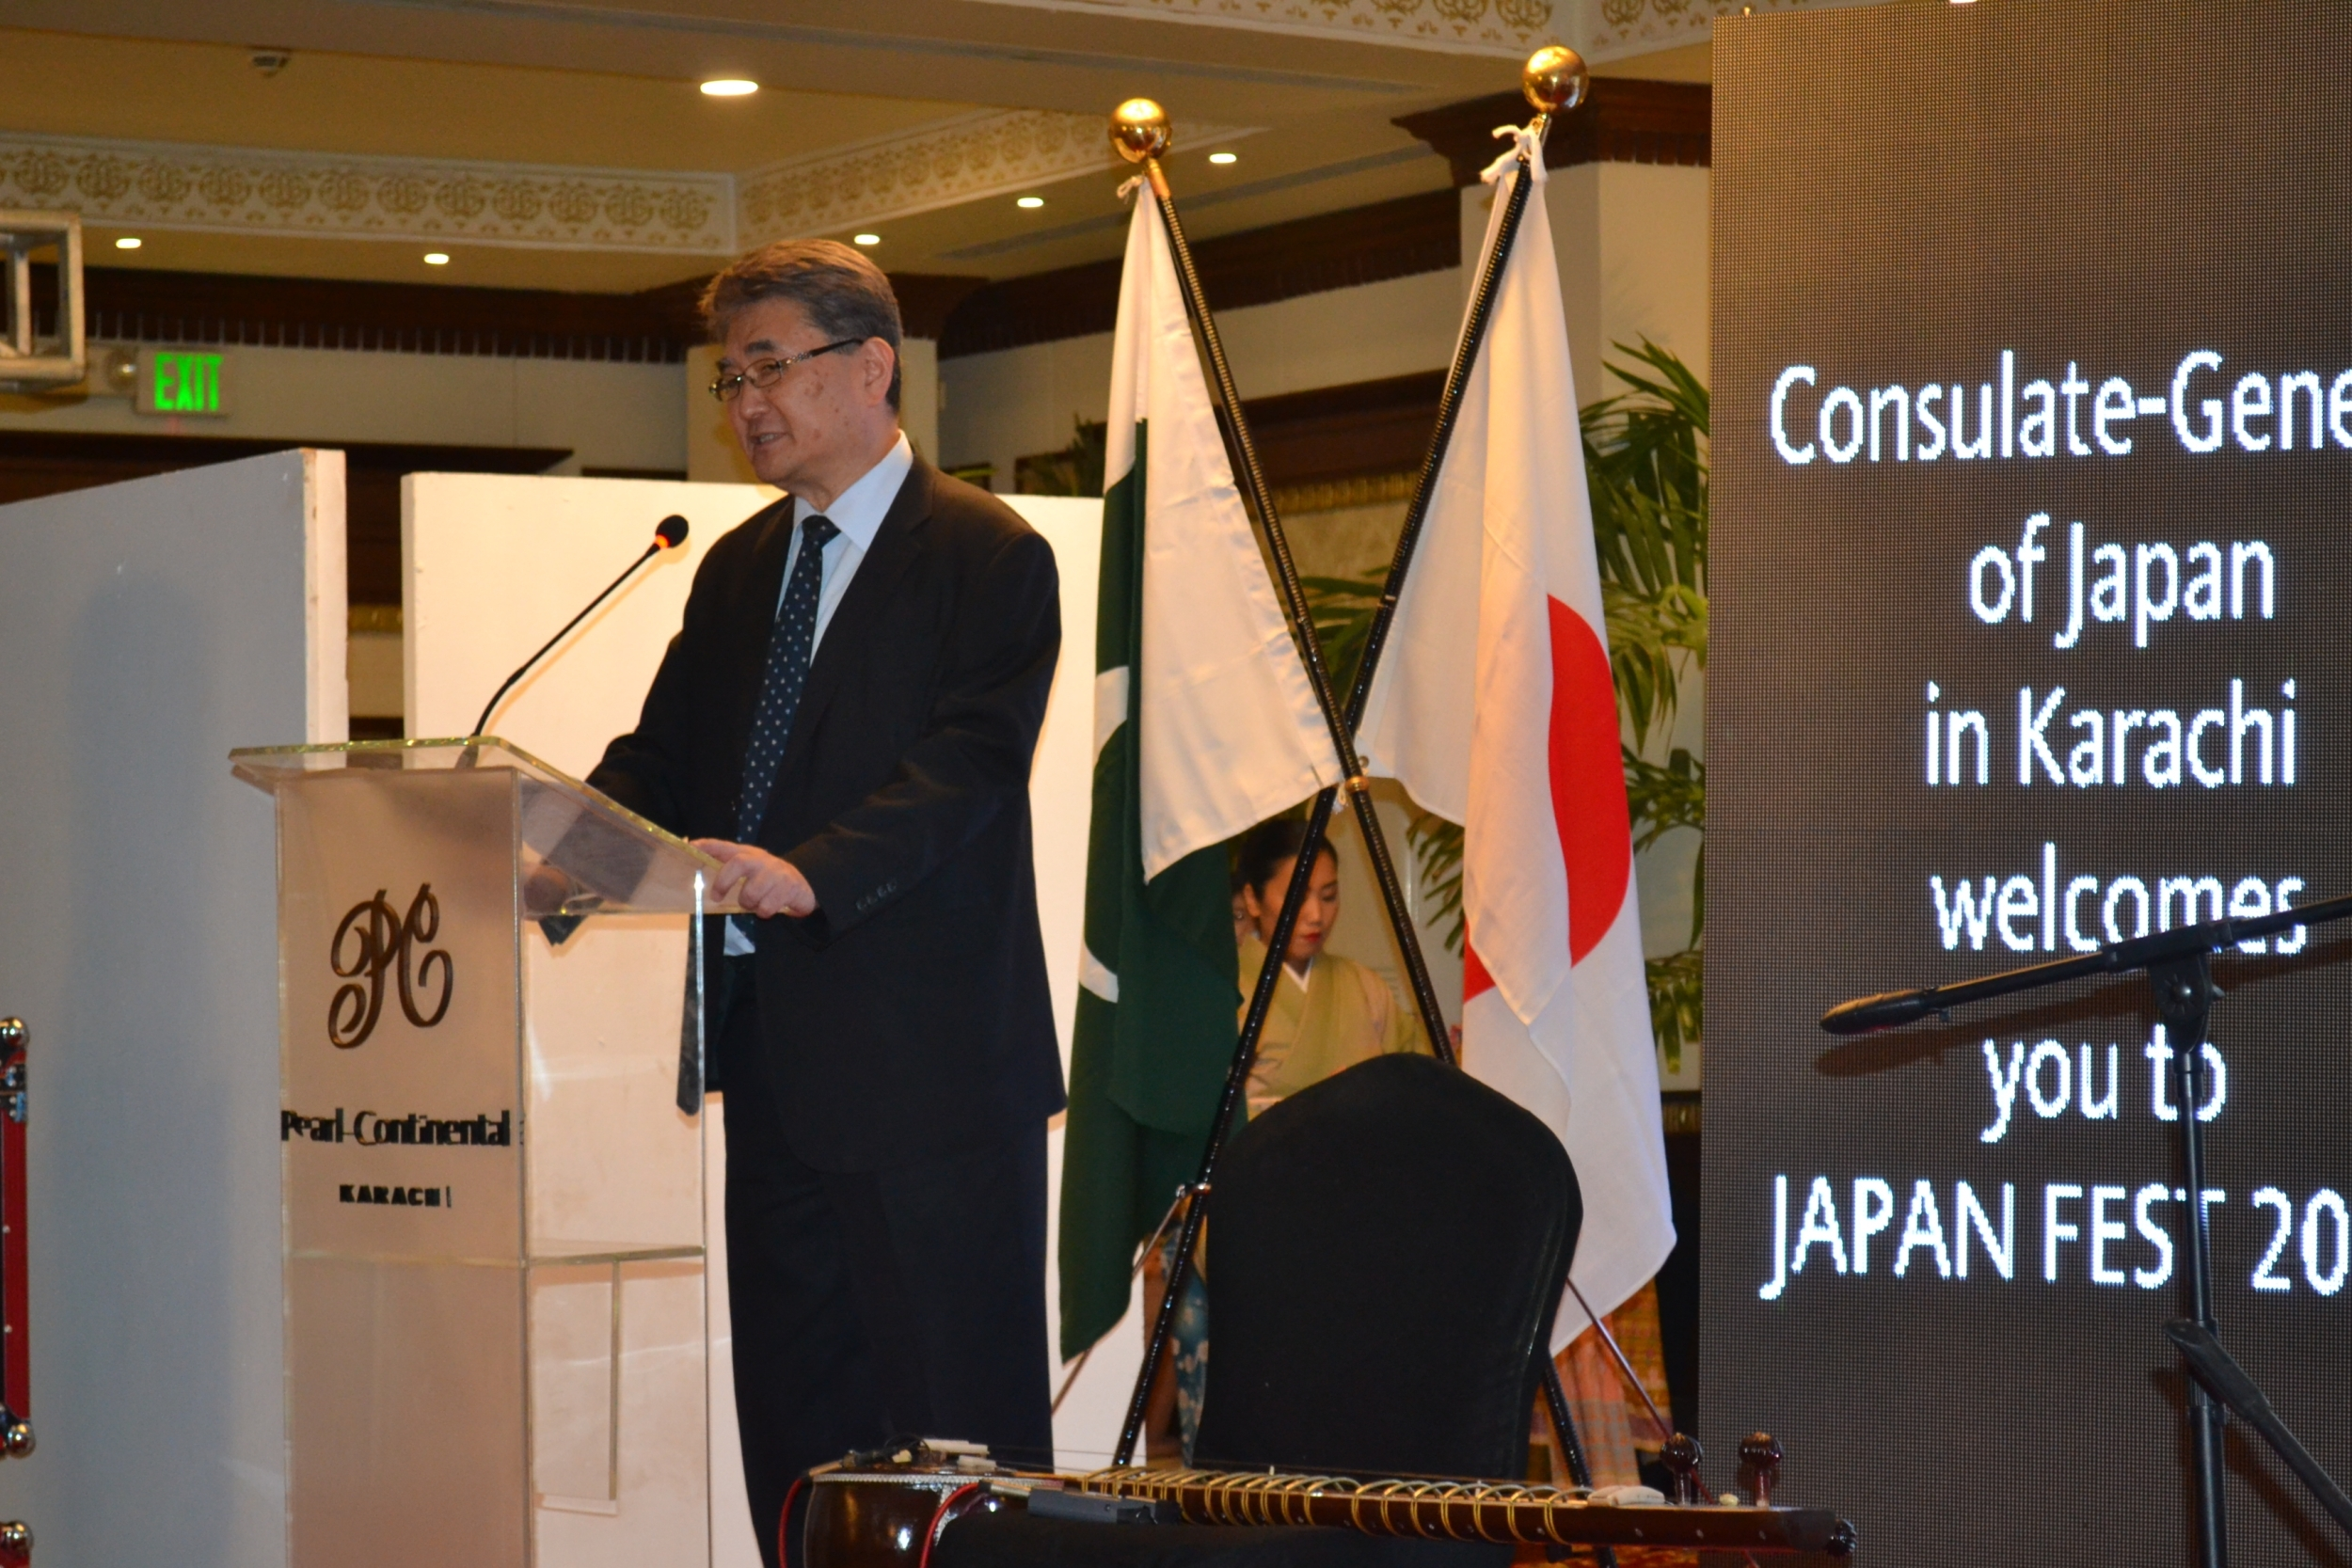 On October 10, 2018, at the opening of &ldquo;Japan Fest 2018&rdquo;, Consul-General of Japan, Mr. Toshikazu Isomura, showed appreciation towards cultural interaction between Japan and Pakistan and wished that the guests enjoyed various aspects of Japanese culture and traditions<br />